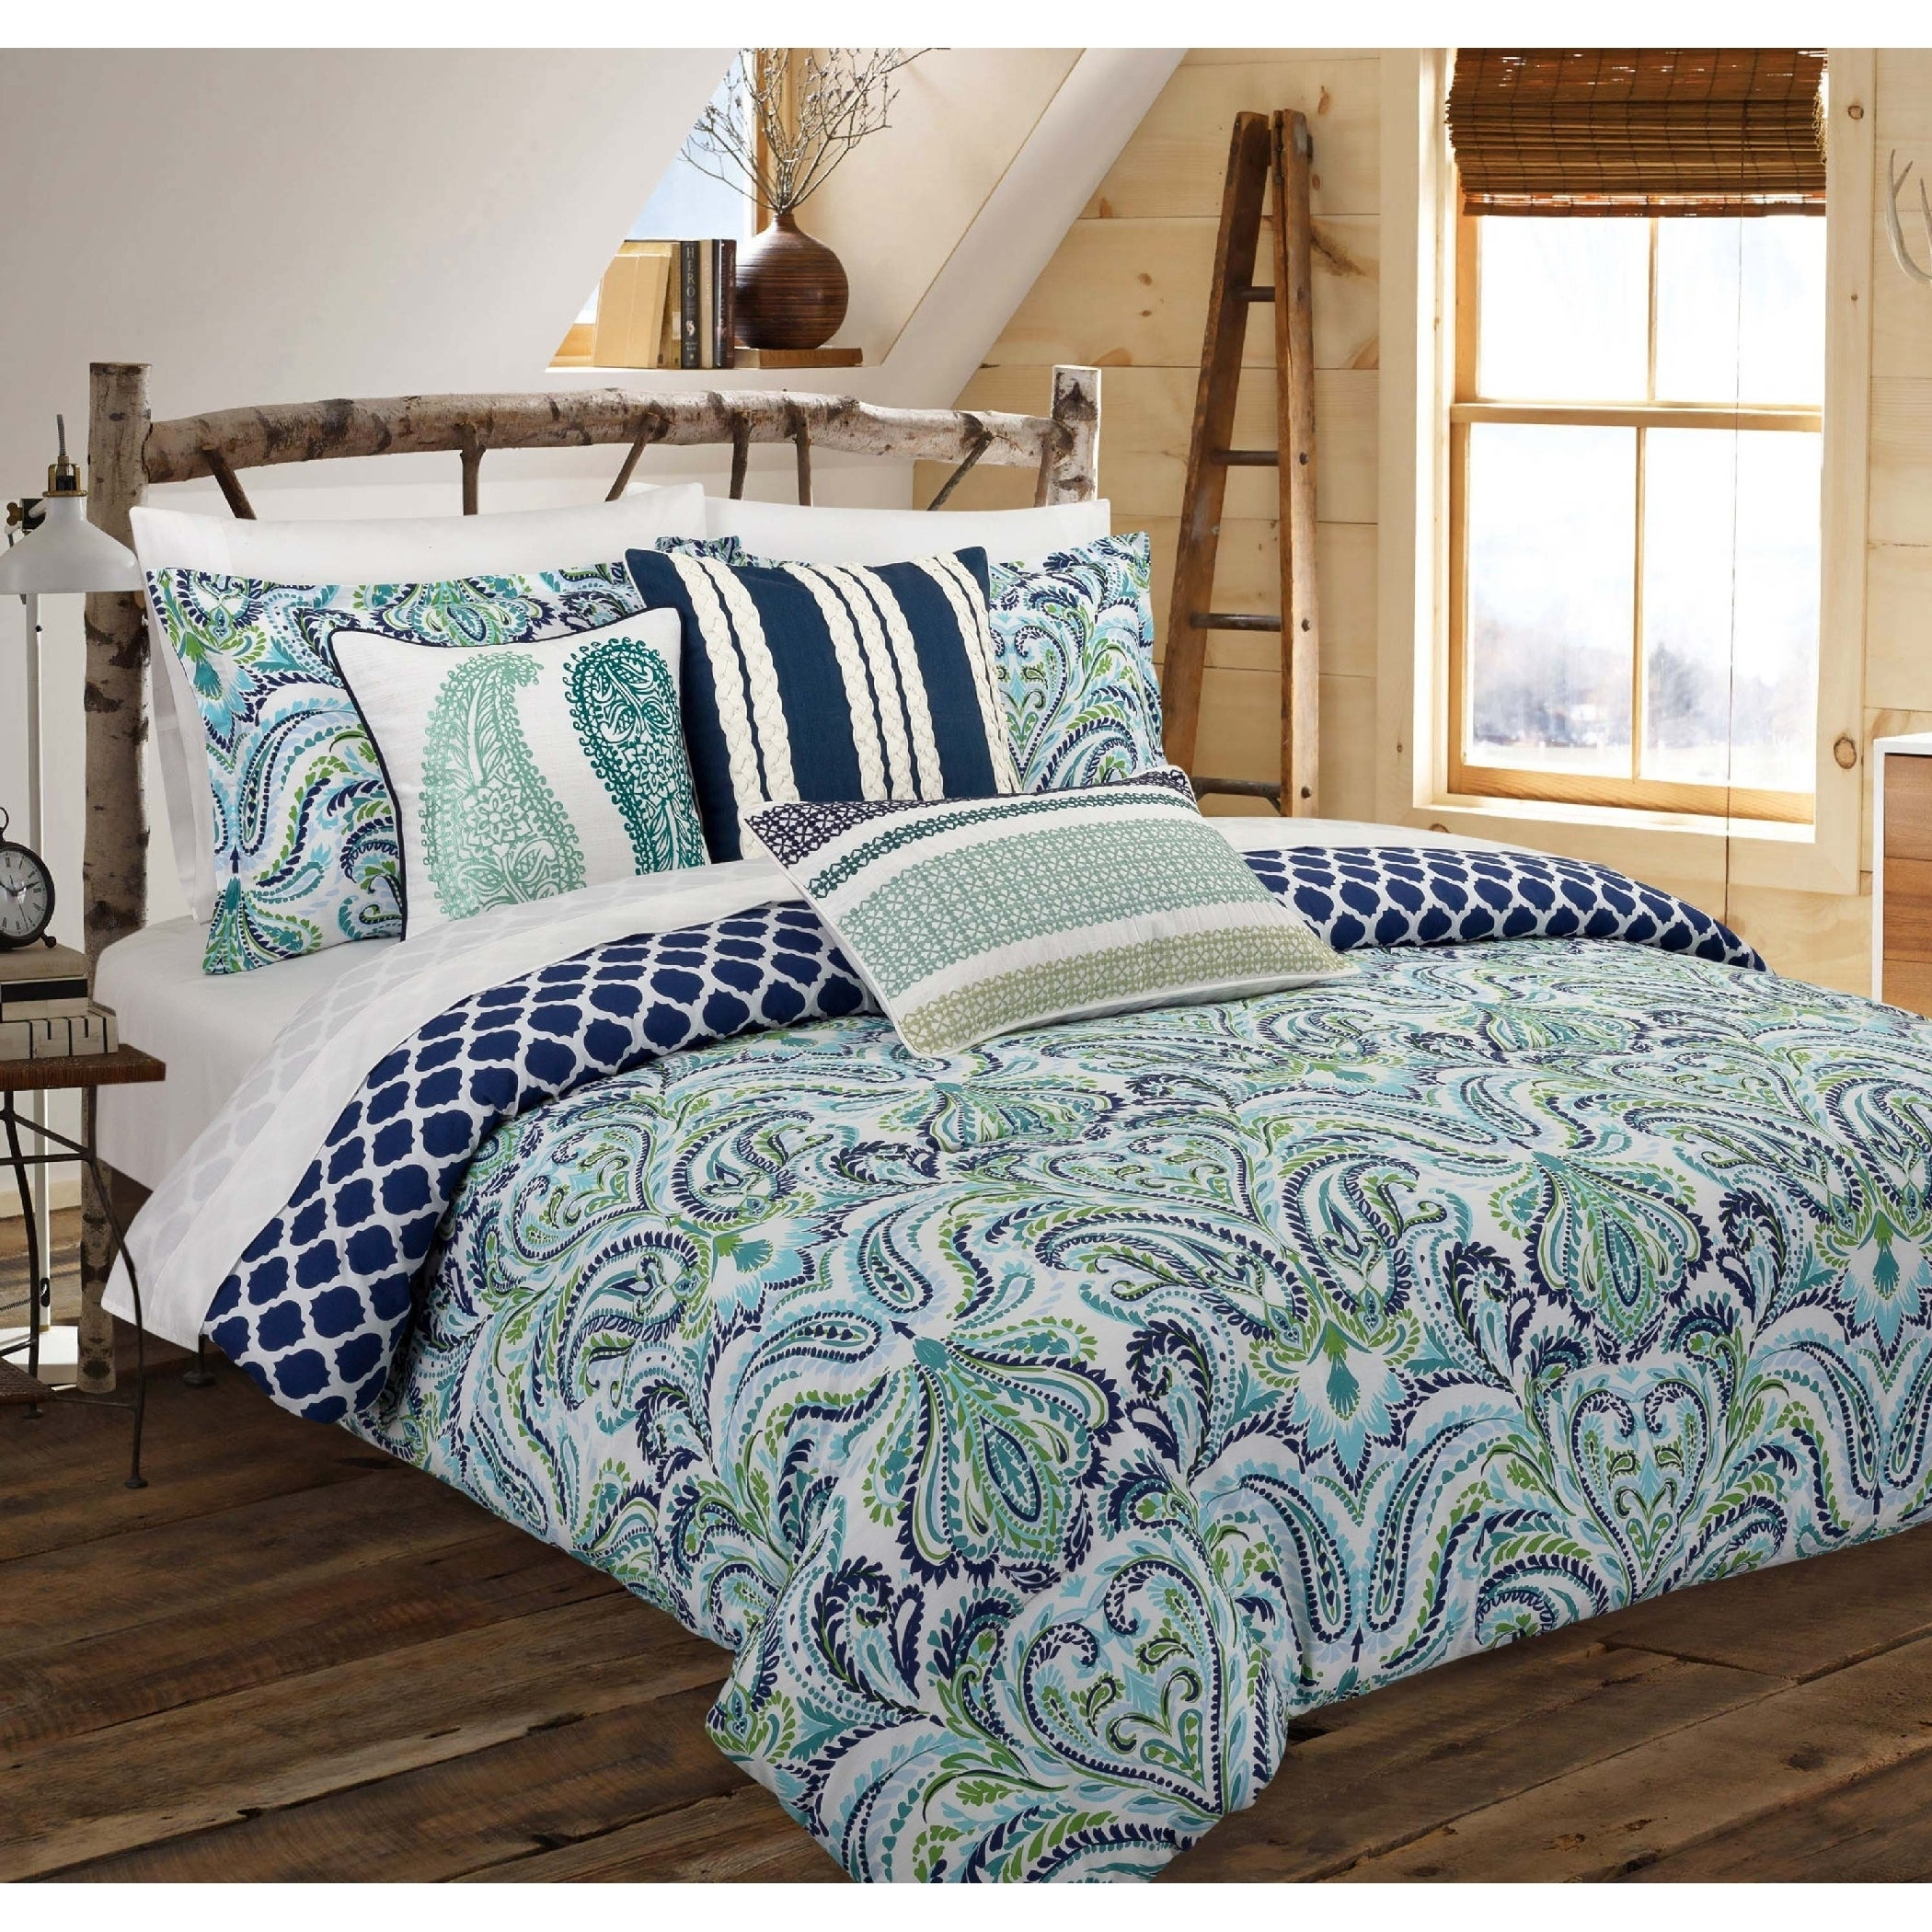 cover set ebay product bedding itm duvet quilt details paisley somerset home